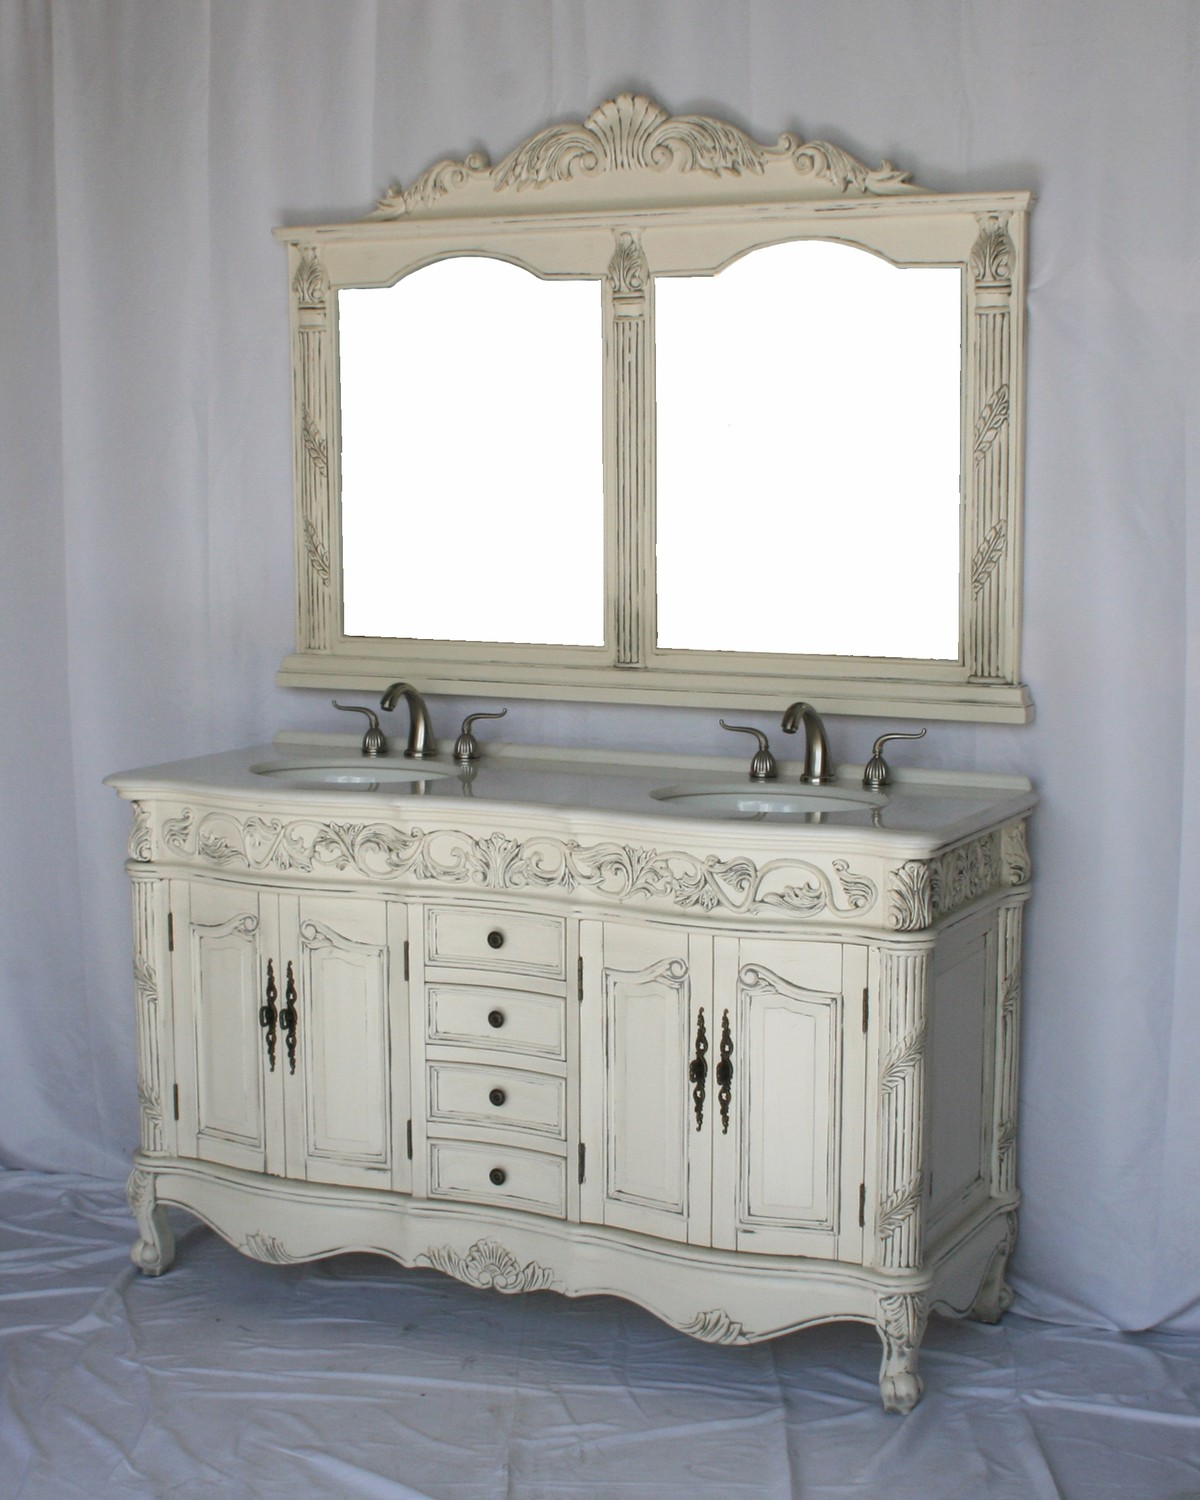 "60"" Adelina Antique Style Double Sink Bathroom Vanity in Antique White Finish with Imperial White Stone Countertop and Mirror Option"